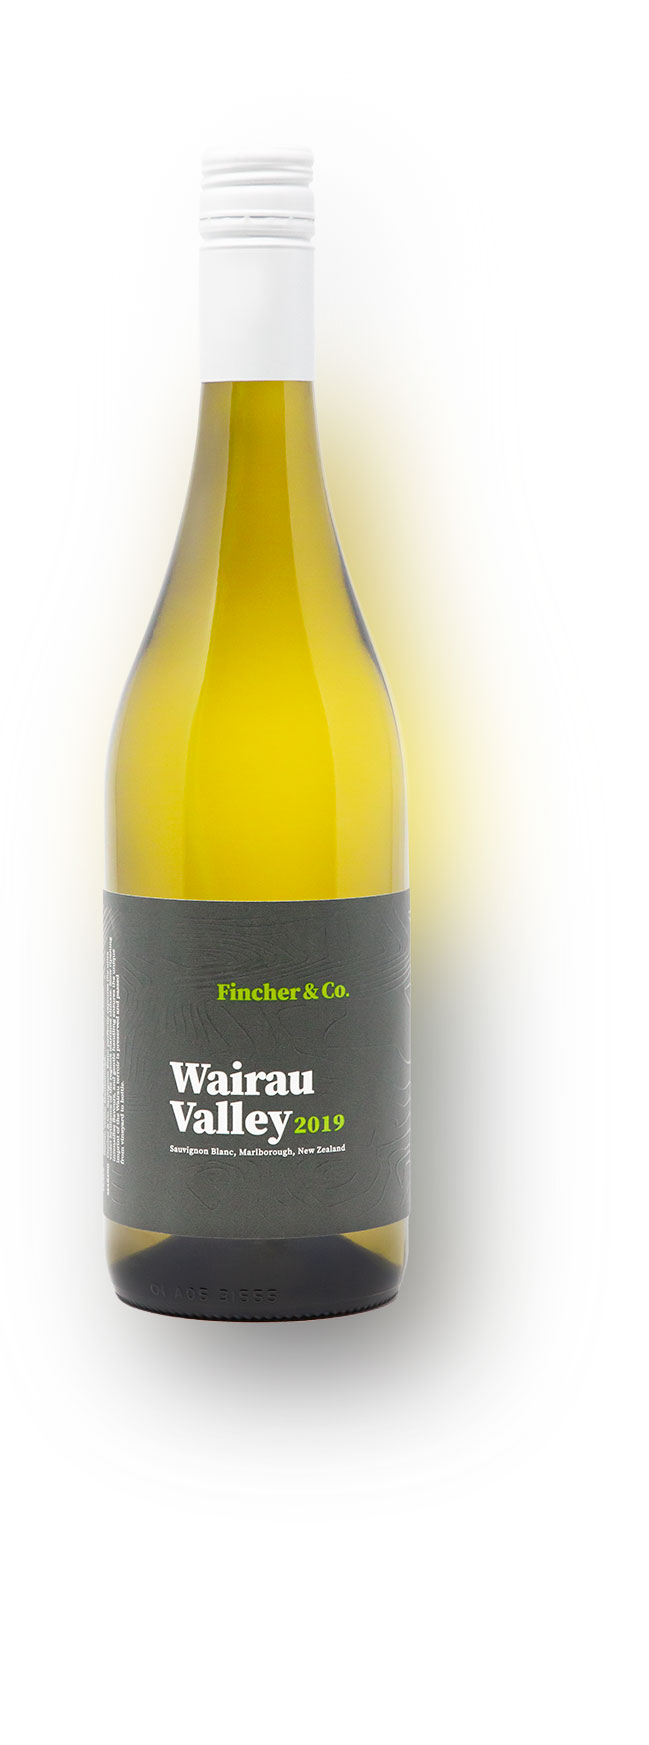 Wairau Valley 2019